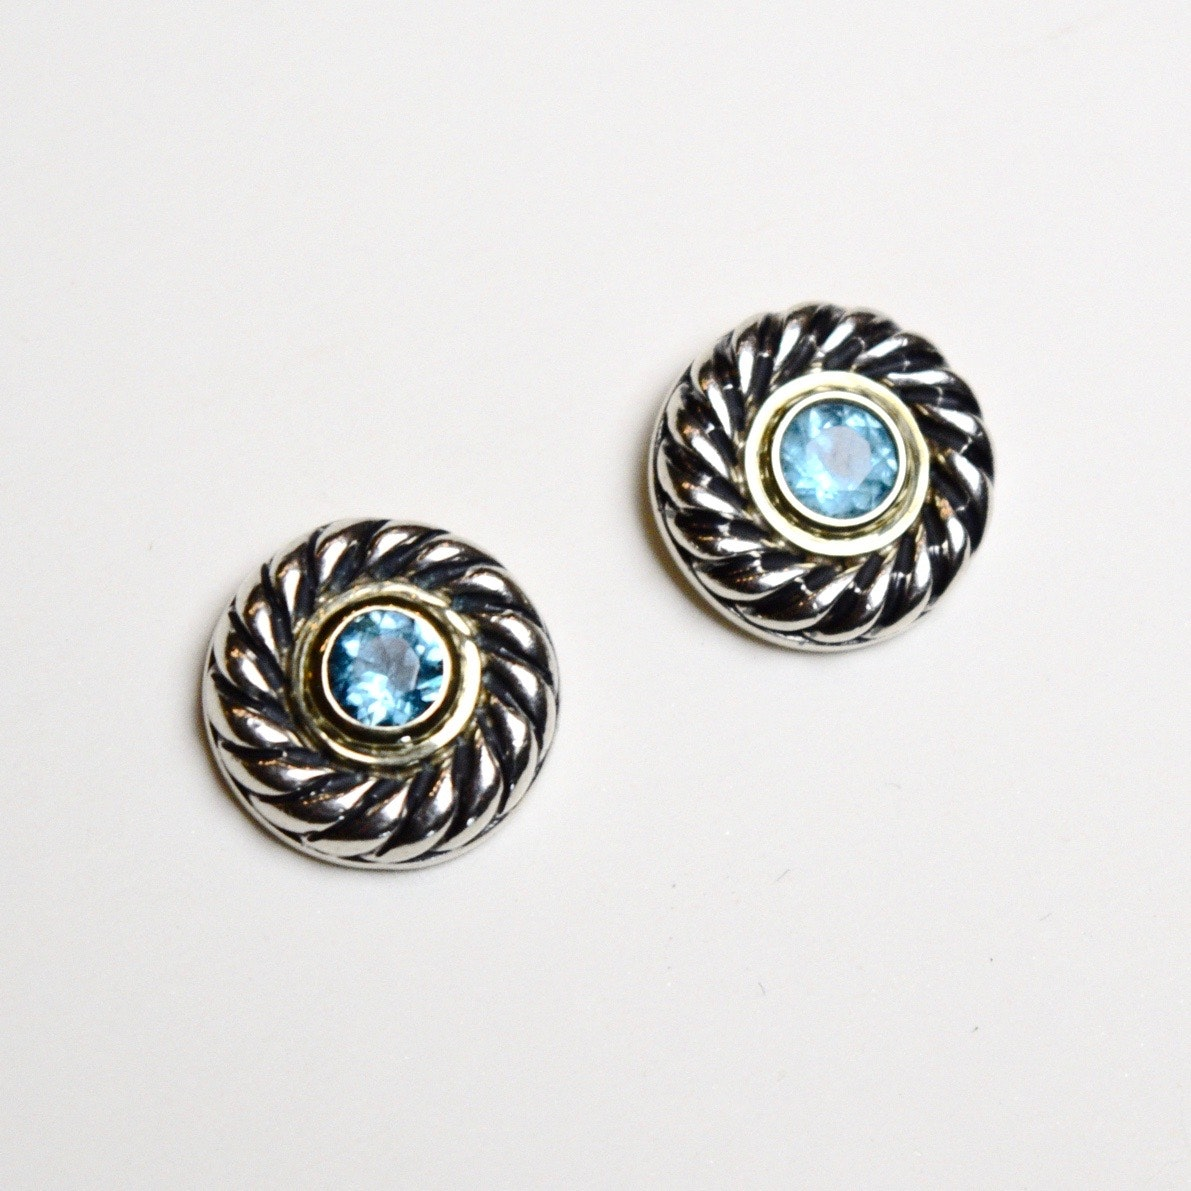 David Yurman Blue Topaz, Sterling Silver, and 14K Yellow Gold Earrings